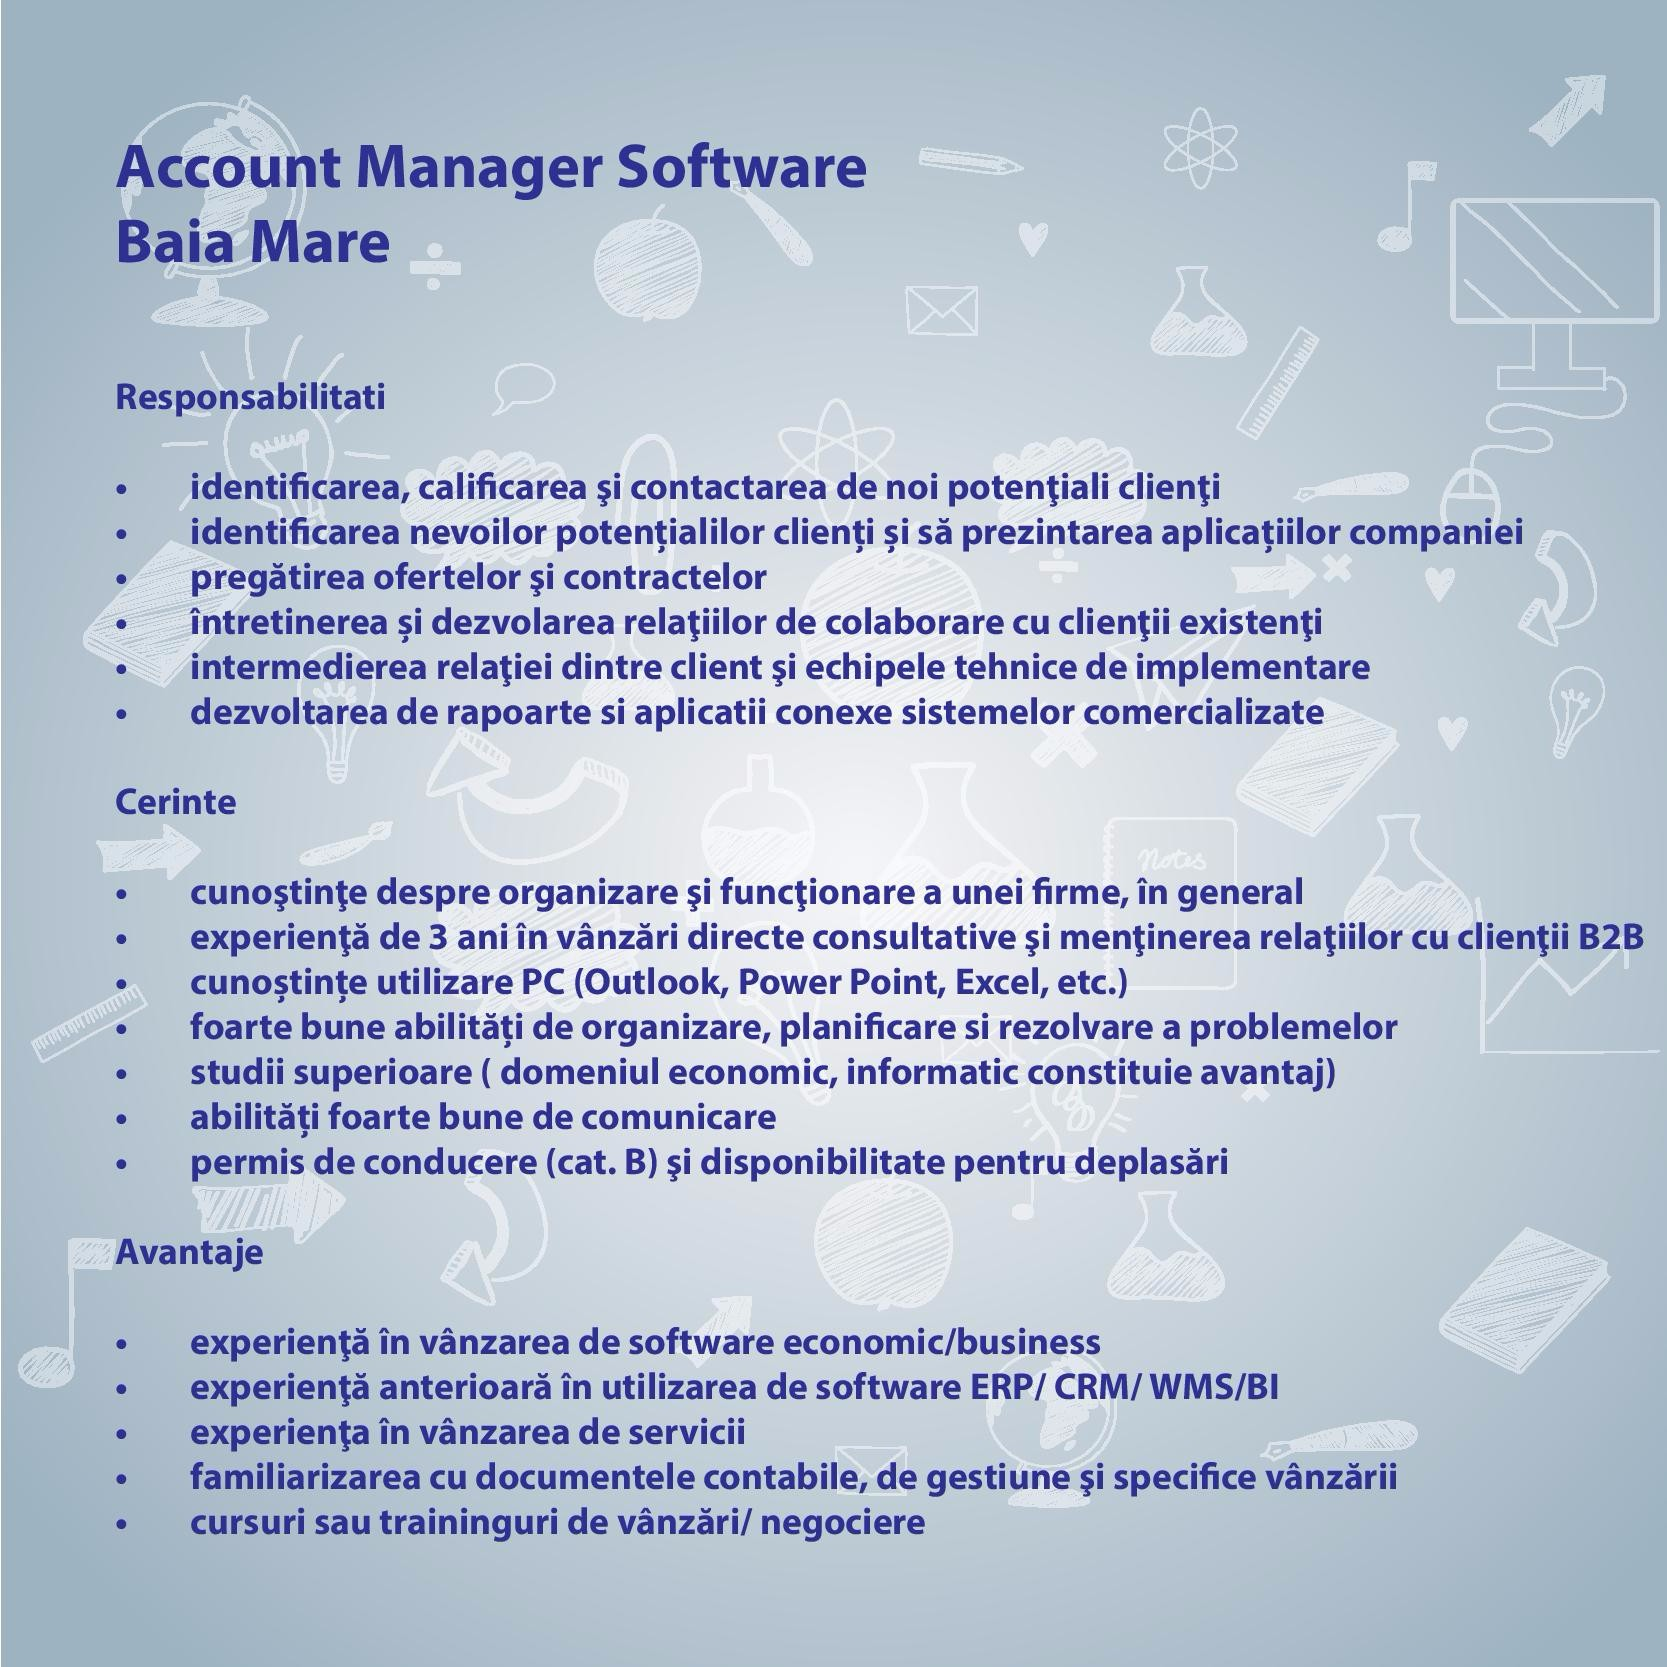 Account Manager Software descriere-page-001